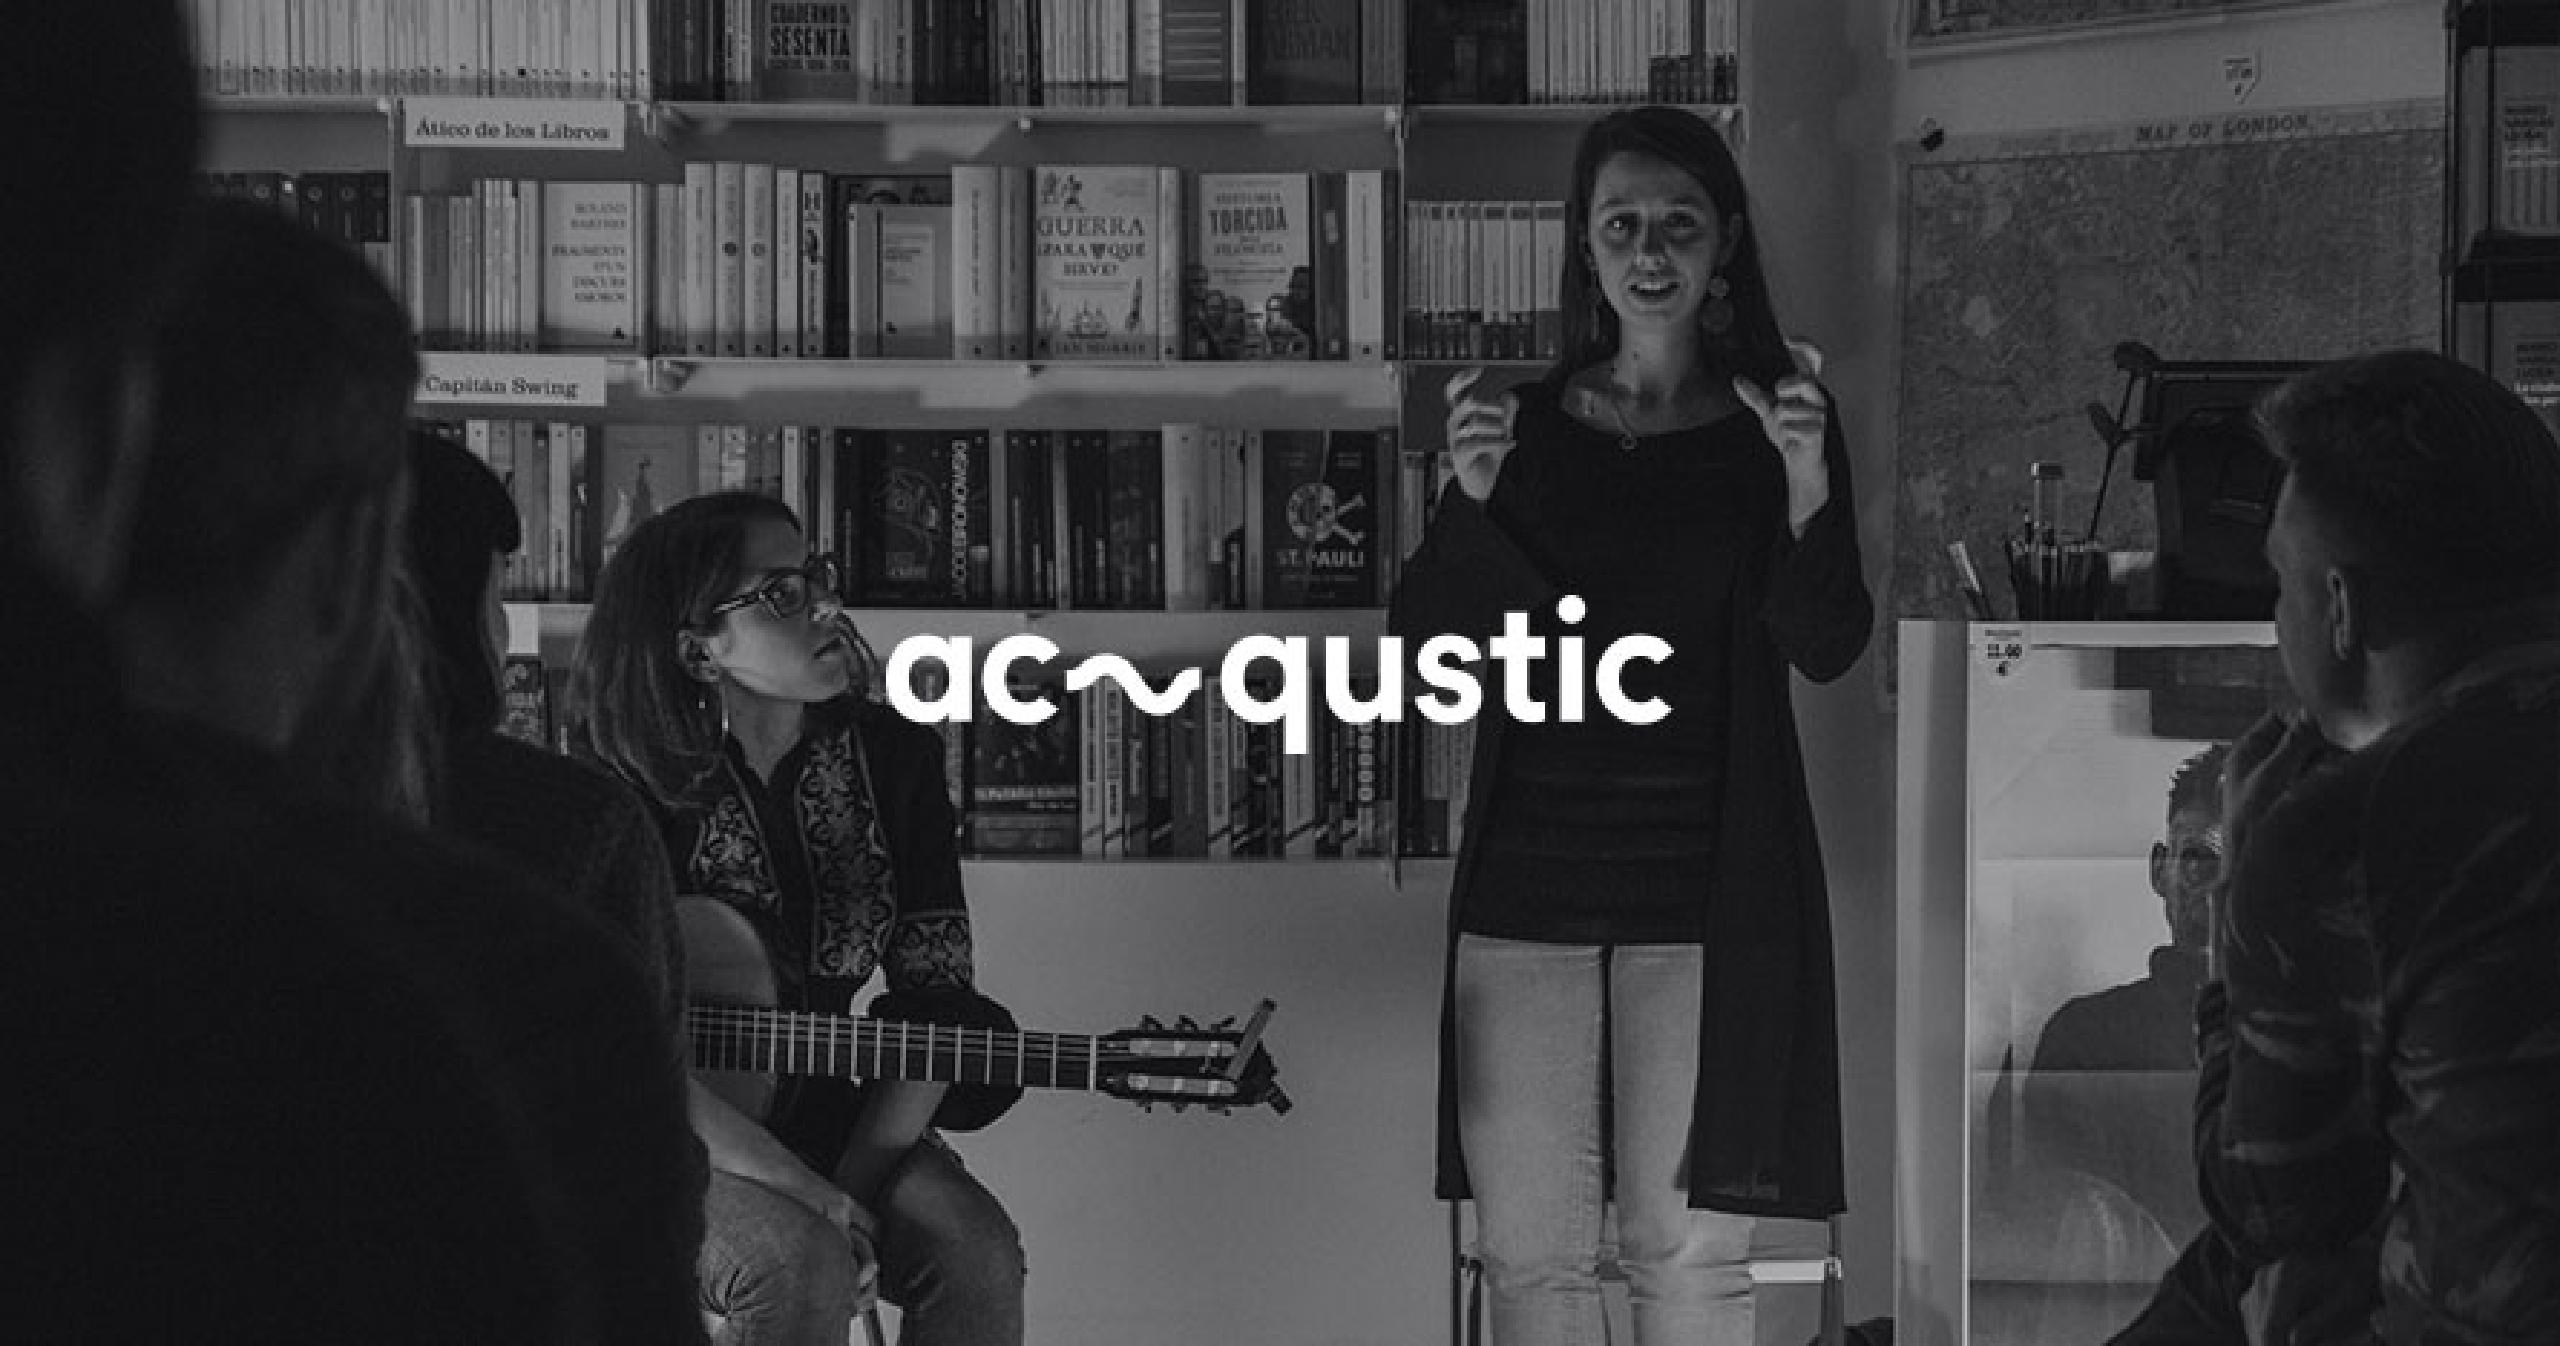 Concierto secreto by acqustic